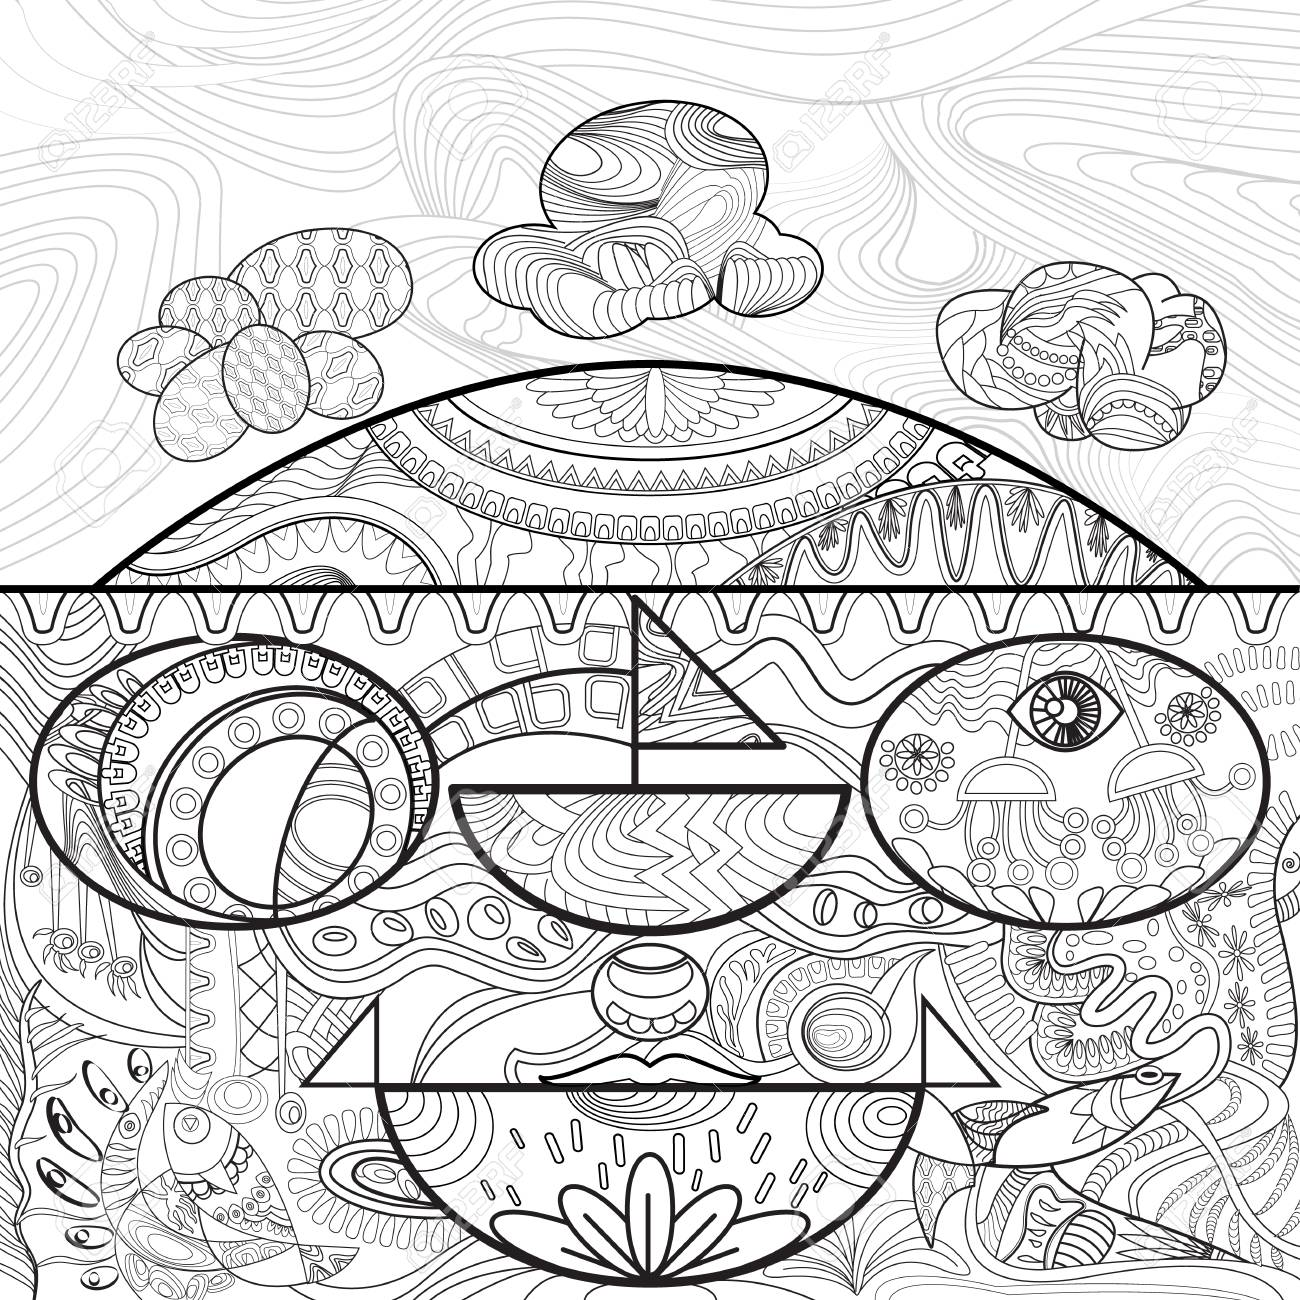 Line Art For Coloring Of Abstract Shape And On White Backgroundhand Drawn Sketch